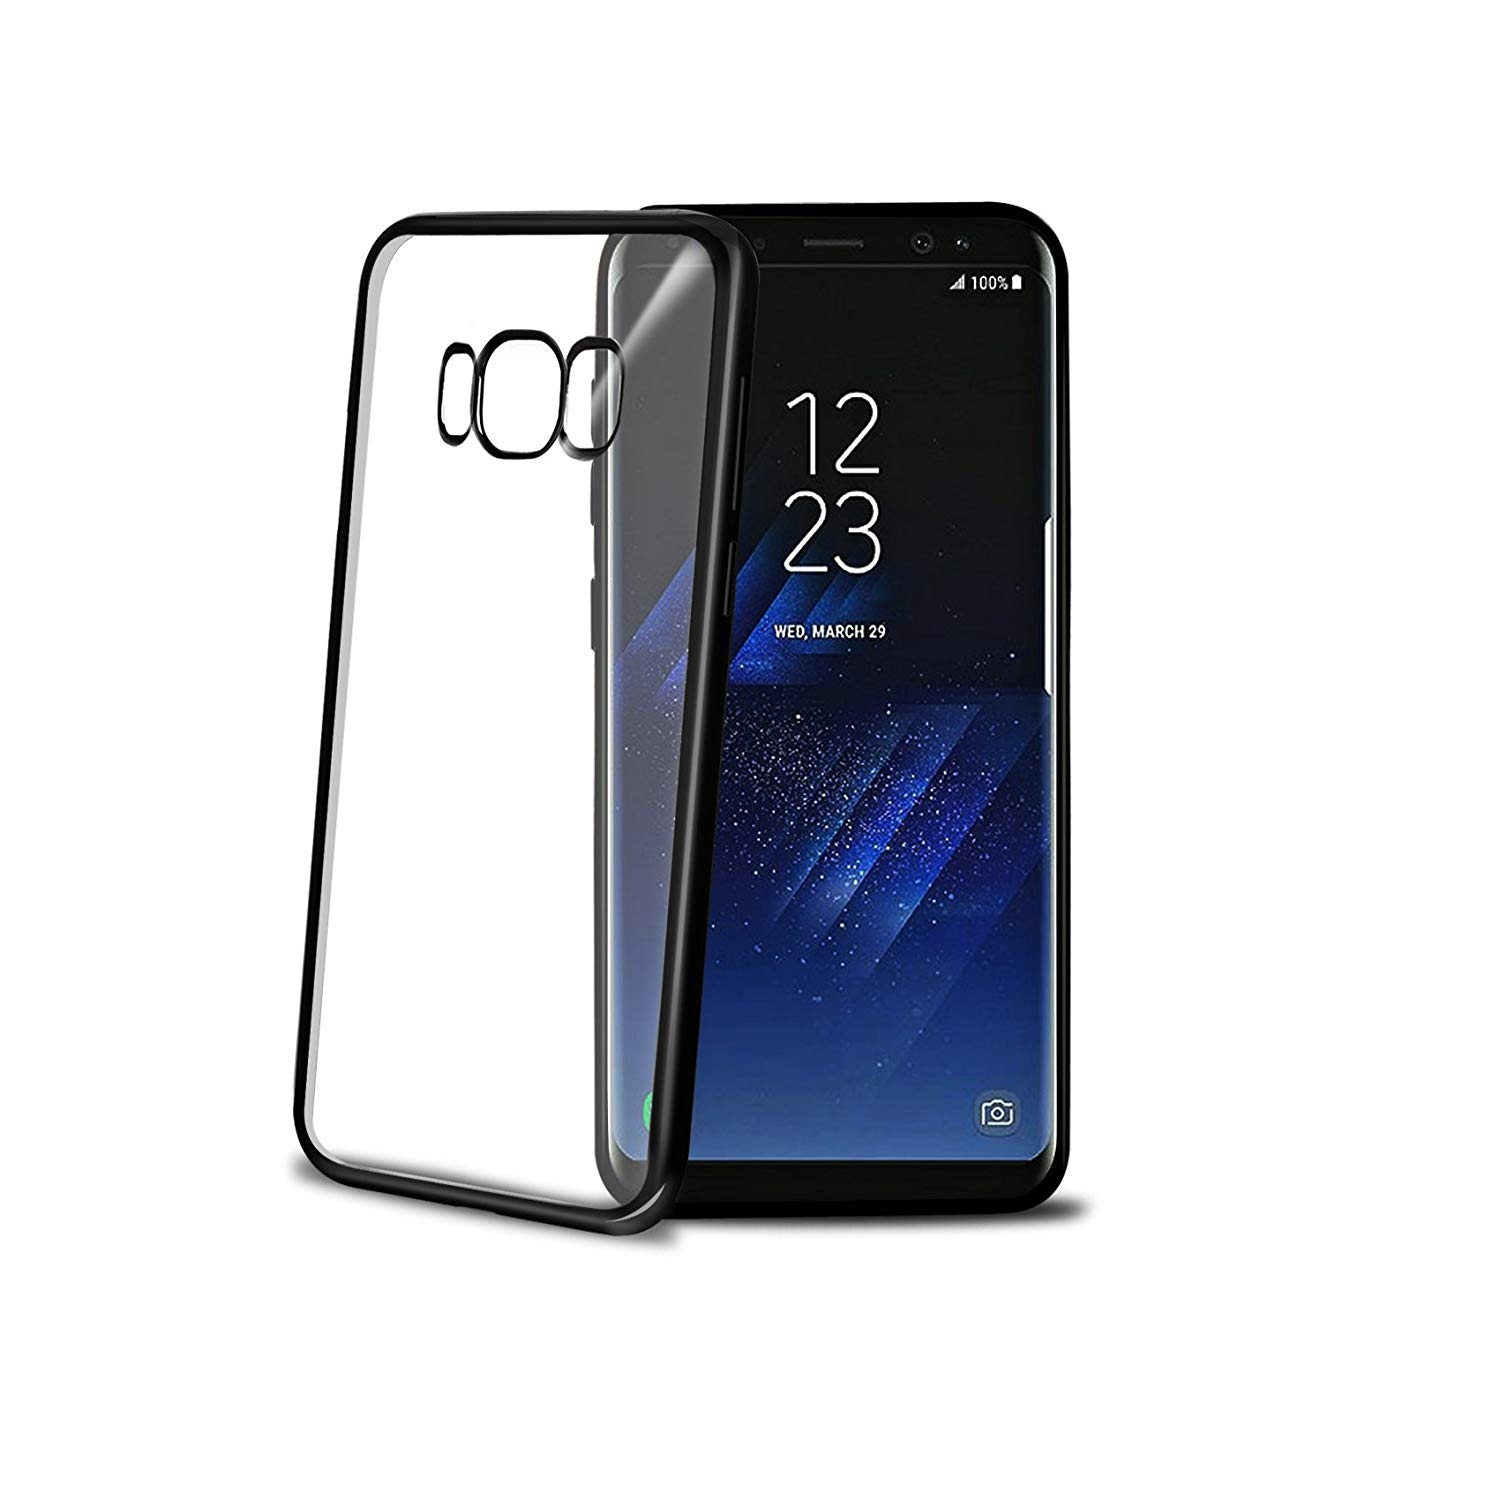 Celly Θήκη Σιλικόνης Samsung Galaxy S8 Plus- Transparent / Black (LASER691BK)